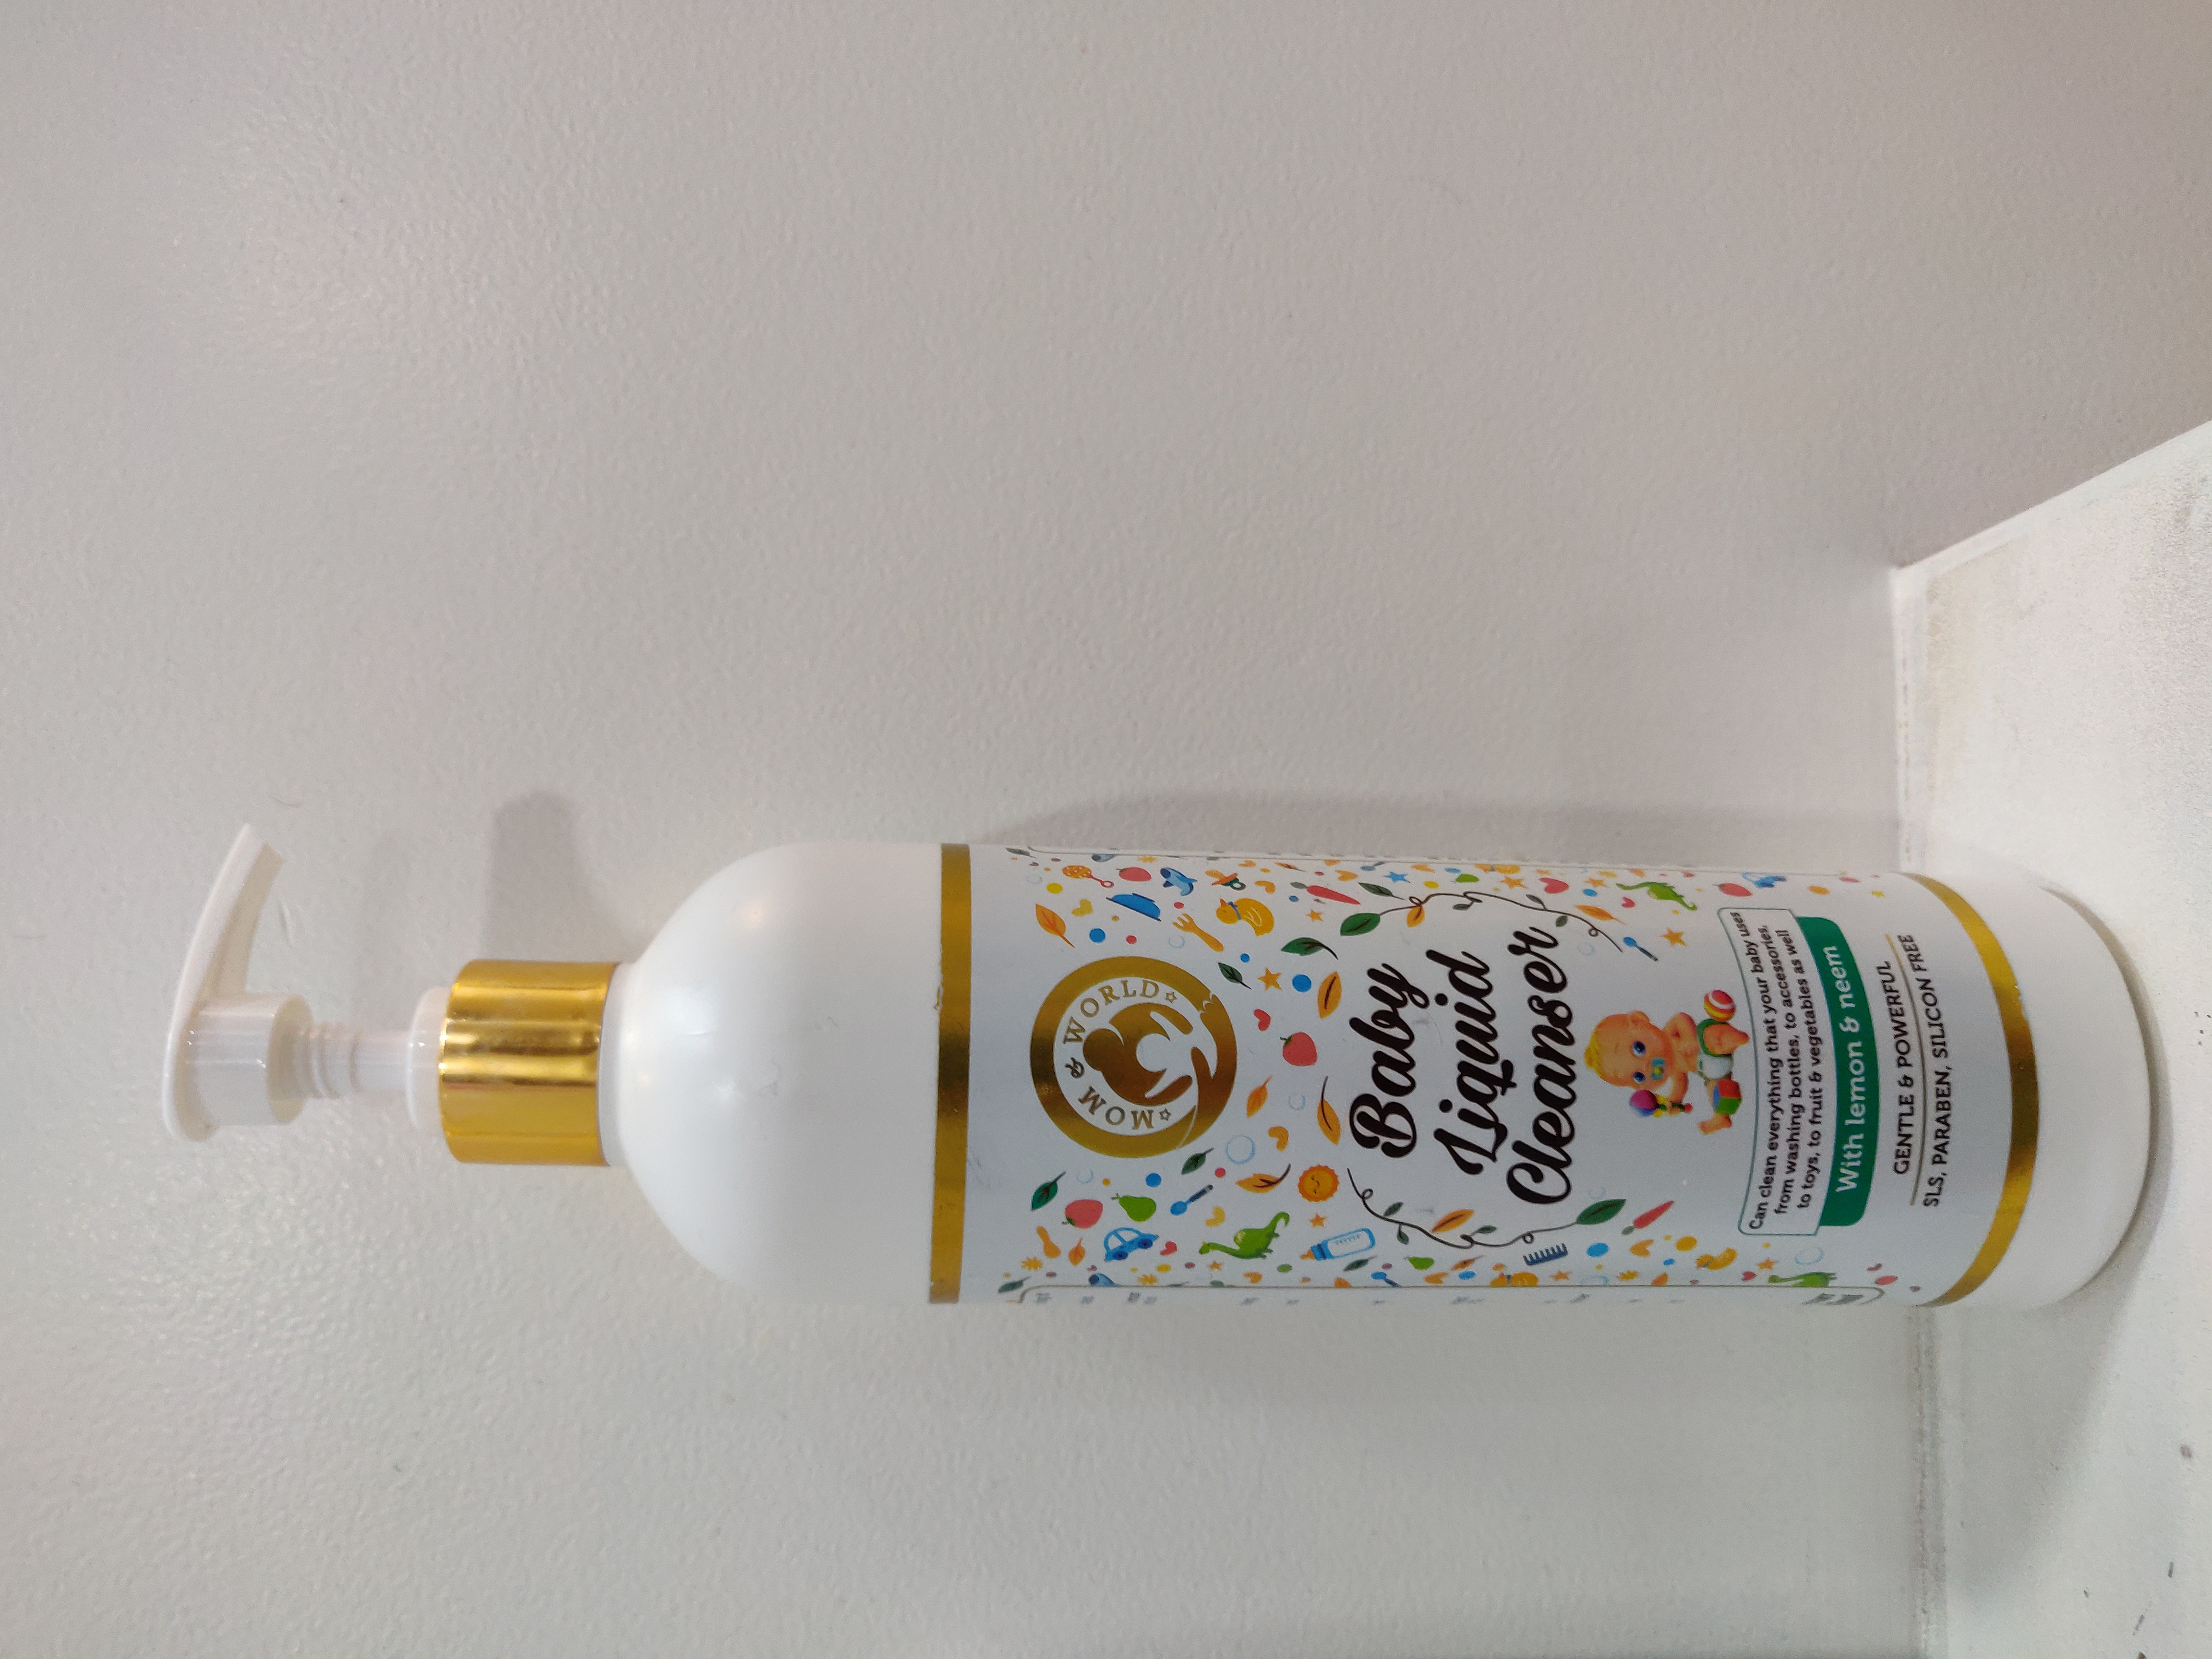 Mom & World Baby Anti Bacterial Liquid Cleanser-Multi purpose cleaner for everything your baby uses practically-By apoorva_bhandari